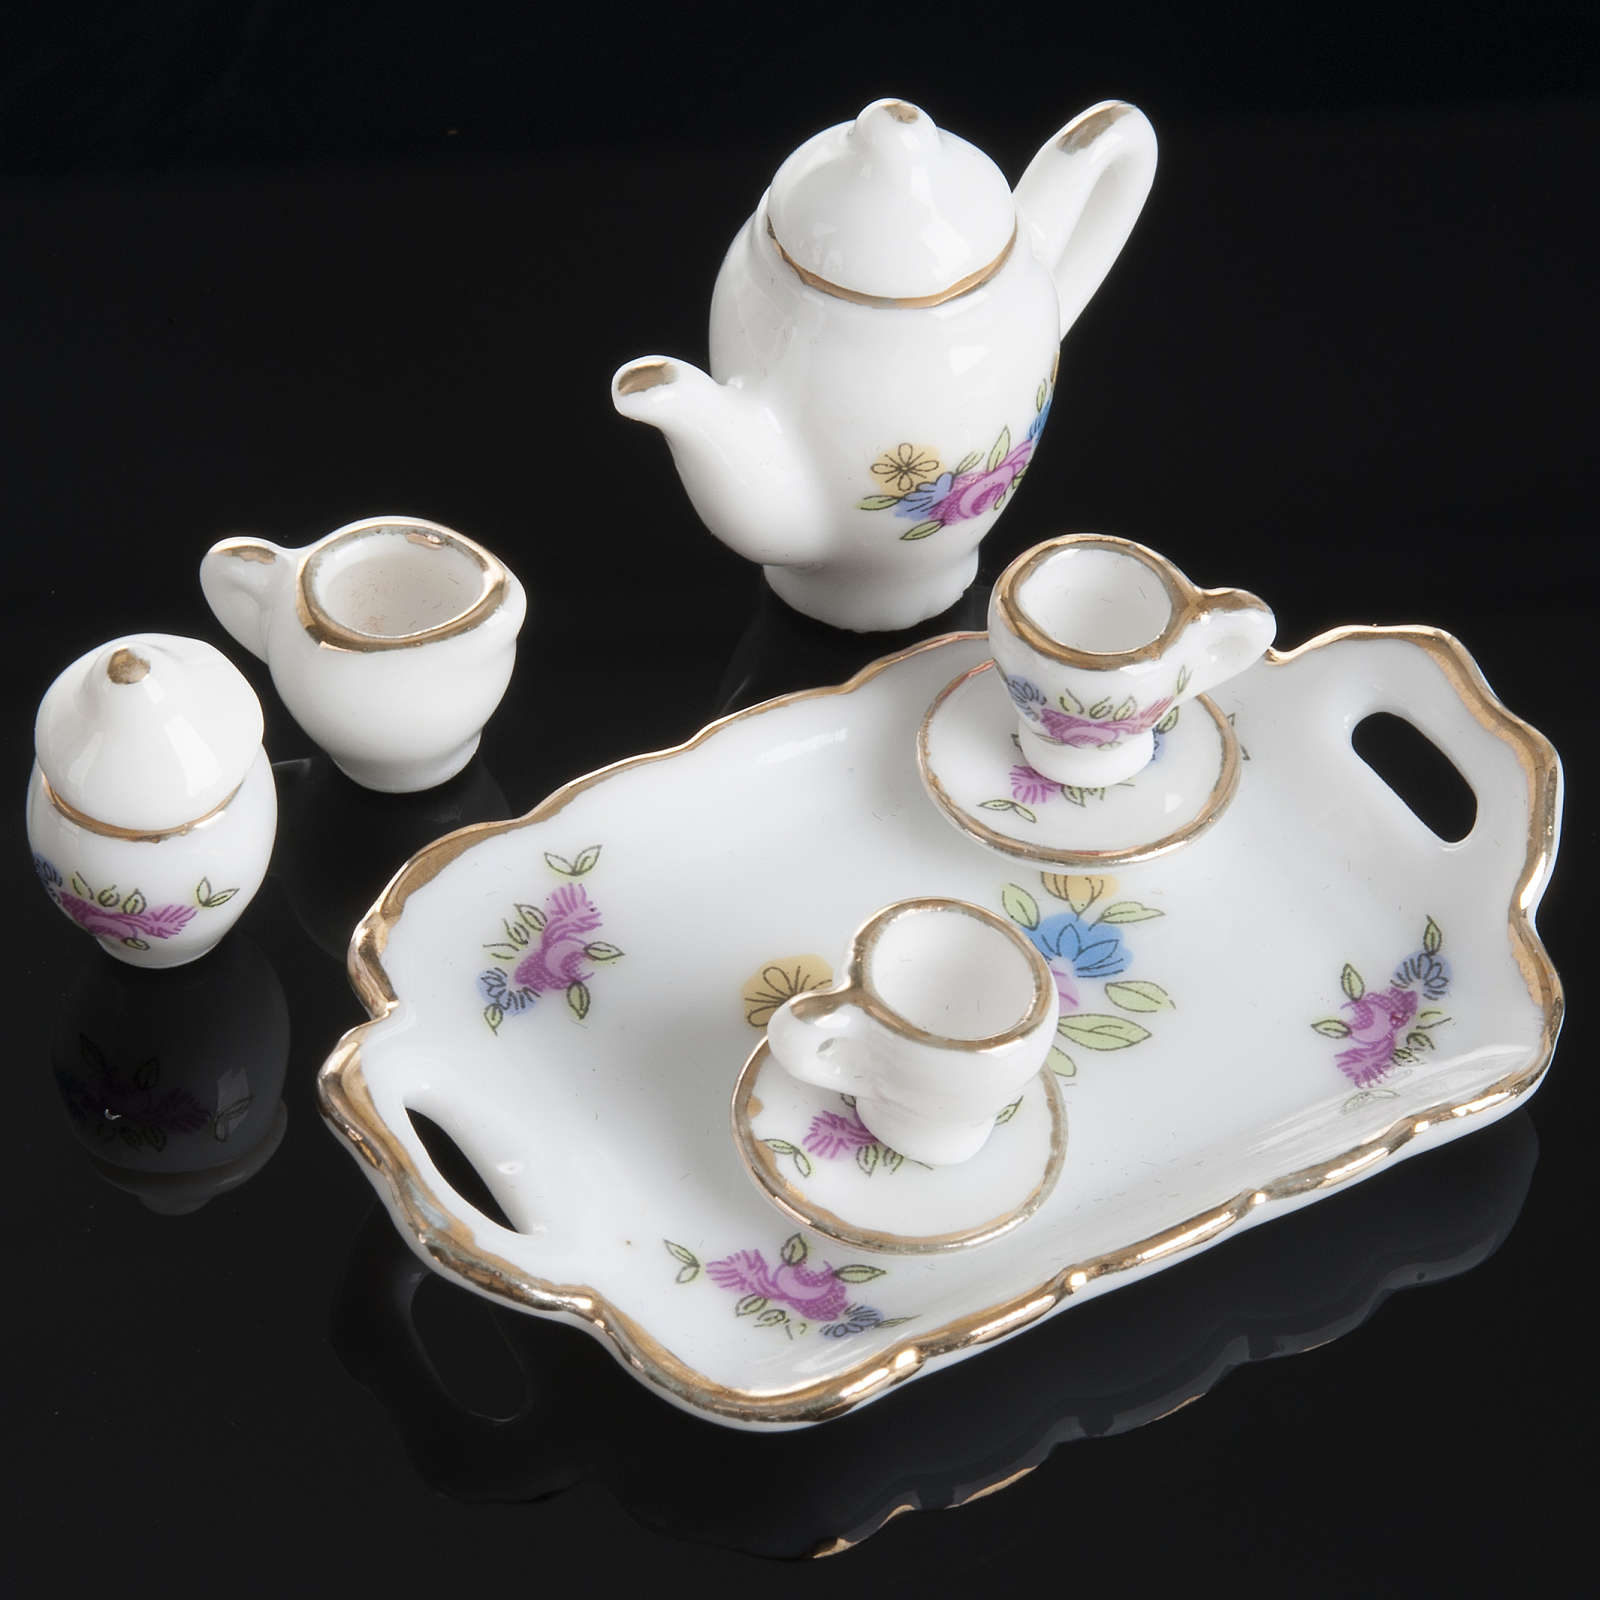 Nativity accessory, coffee and tea set in porcelain 4